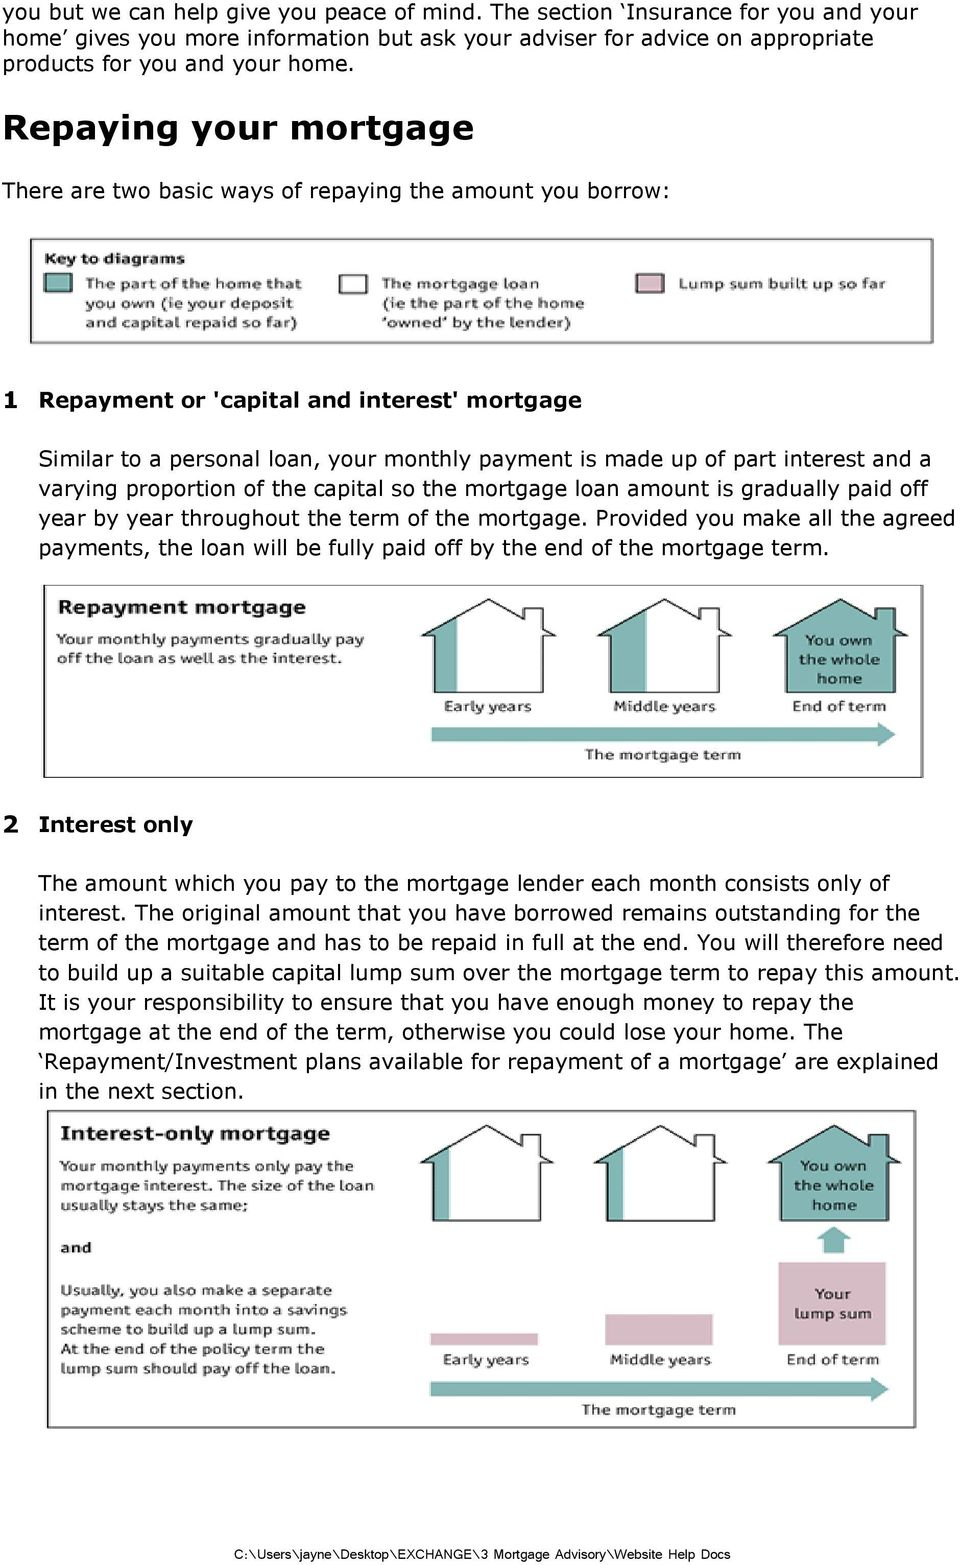 interest and a varying proportion of the capital so the mortgage loan amount is gradually paid off year by year throughout the term of the mortgage.